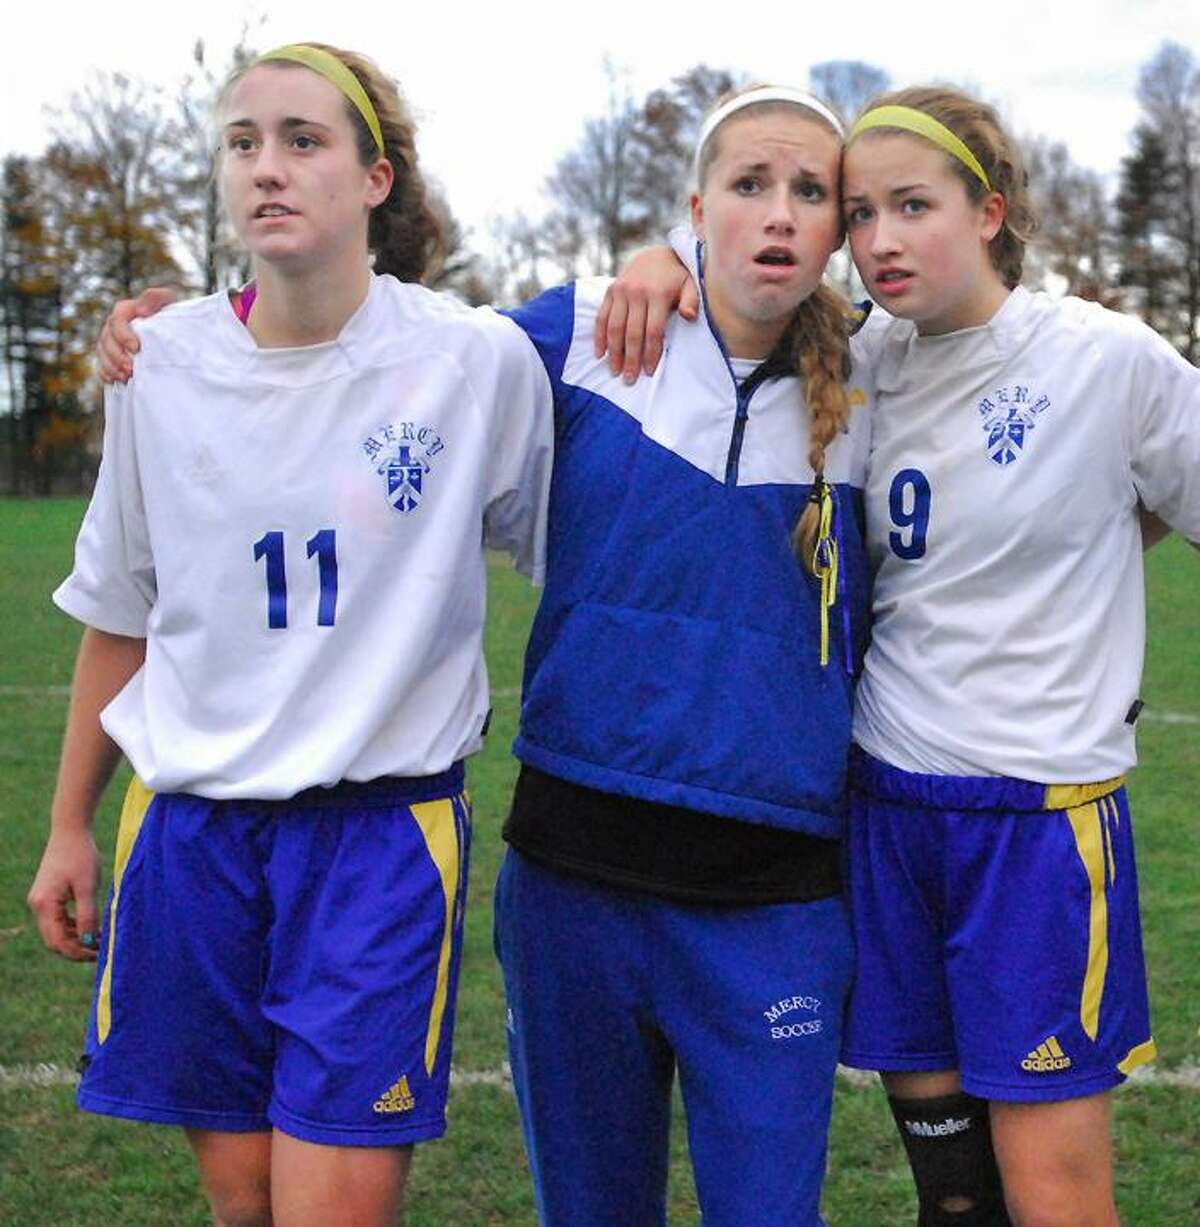 Catherine Avalone/The Middletown PressMercy senior captains Sheena Landy, Hope Tiezzi and Kelsey Pietruska during the second round of penalty kicks following a double overtime match against Shelton in the SCC semi final round Friday afternoon. Shelton defeated the Tigers (1-1) 7-5.